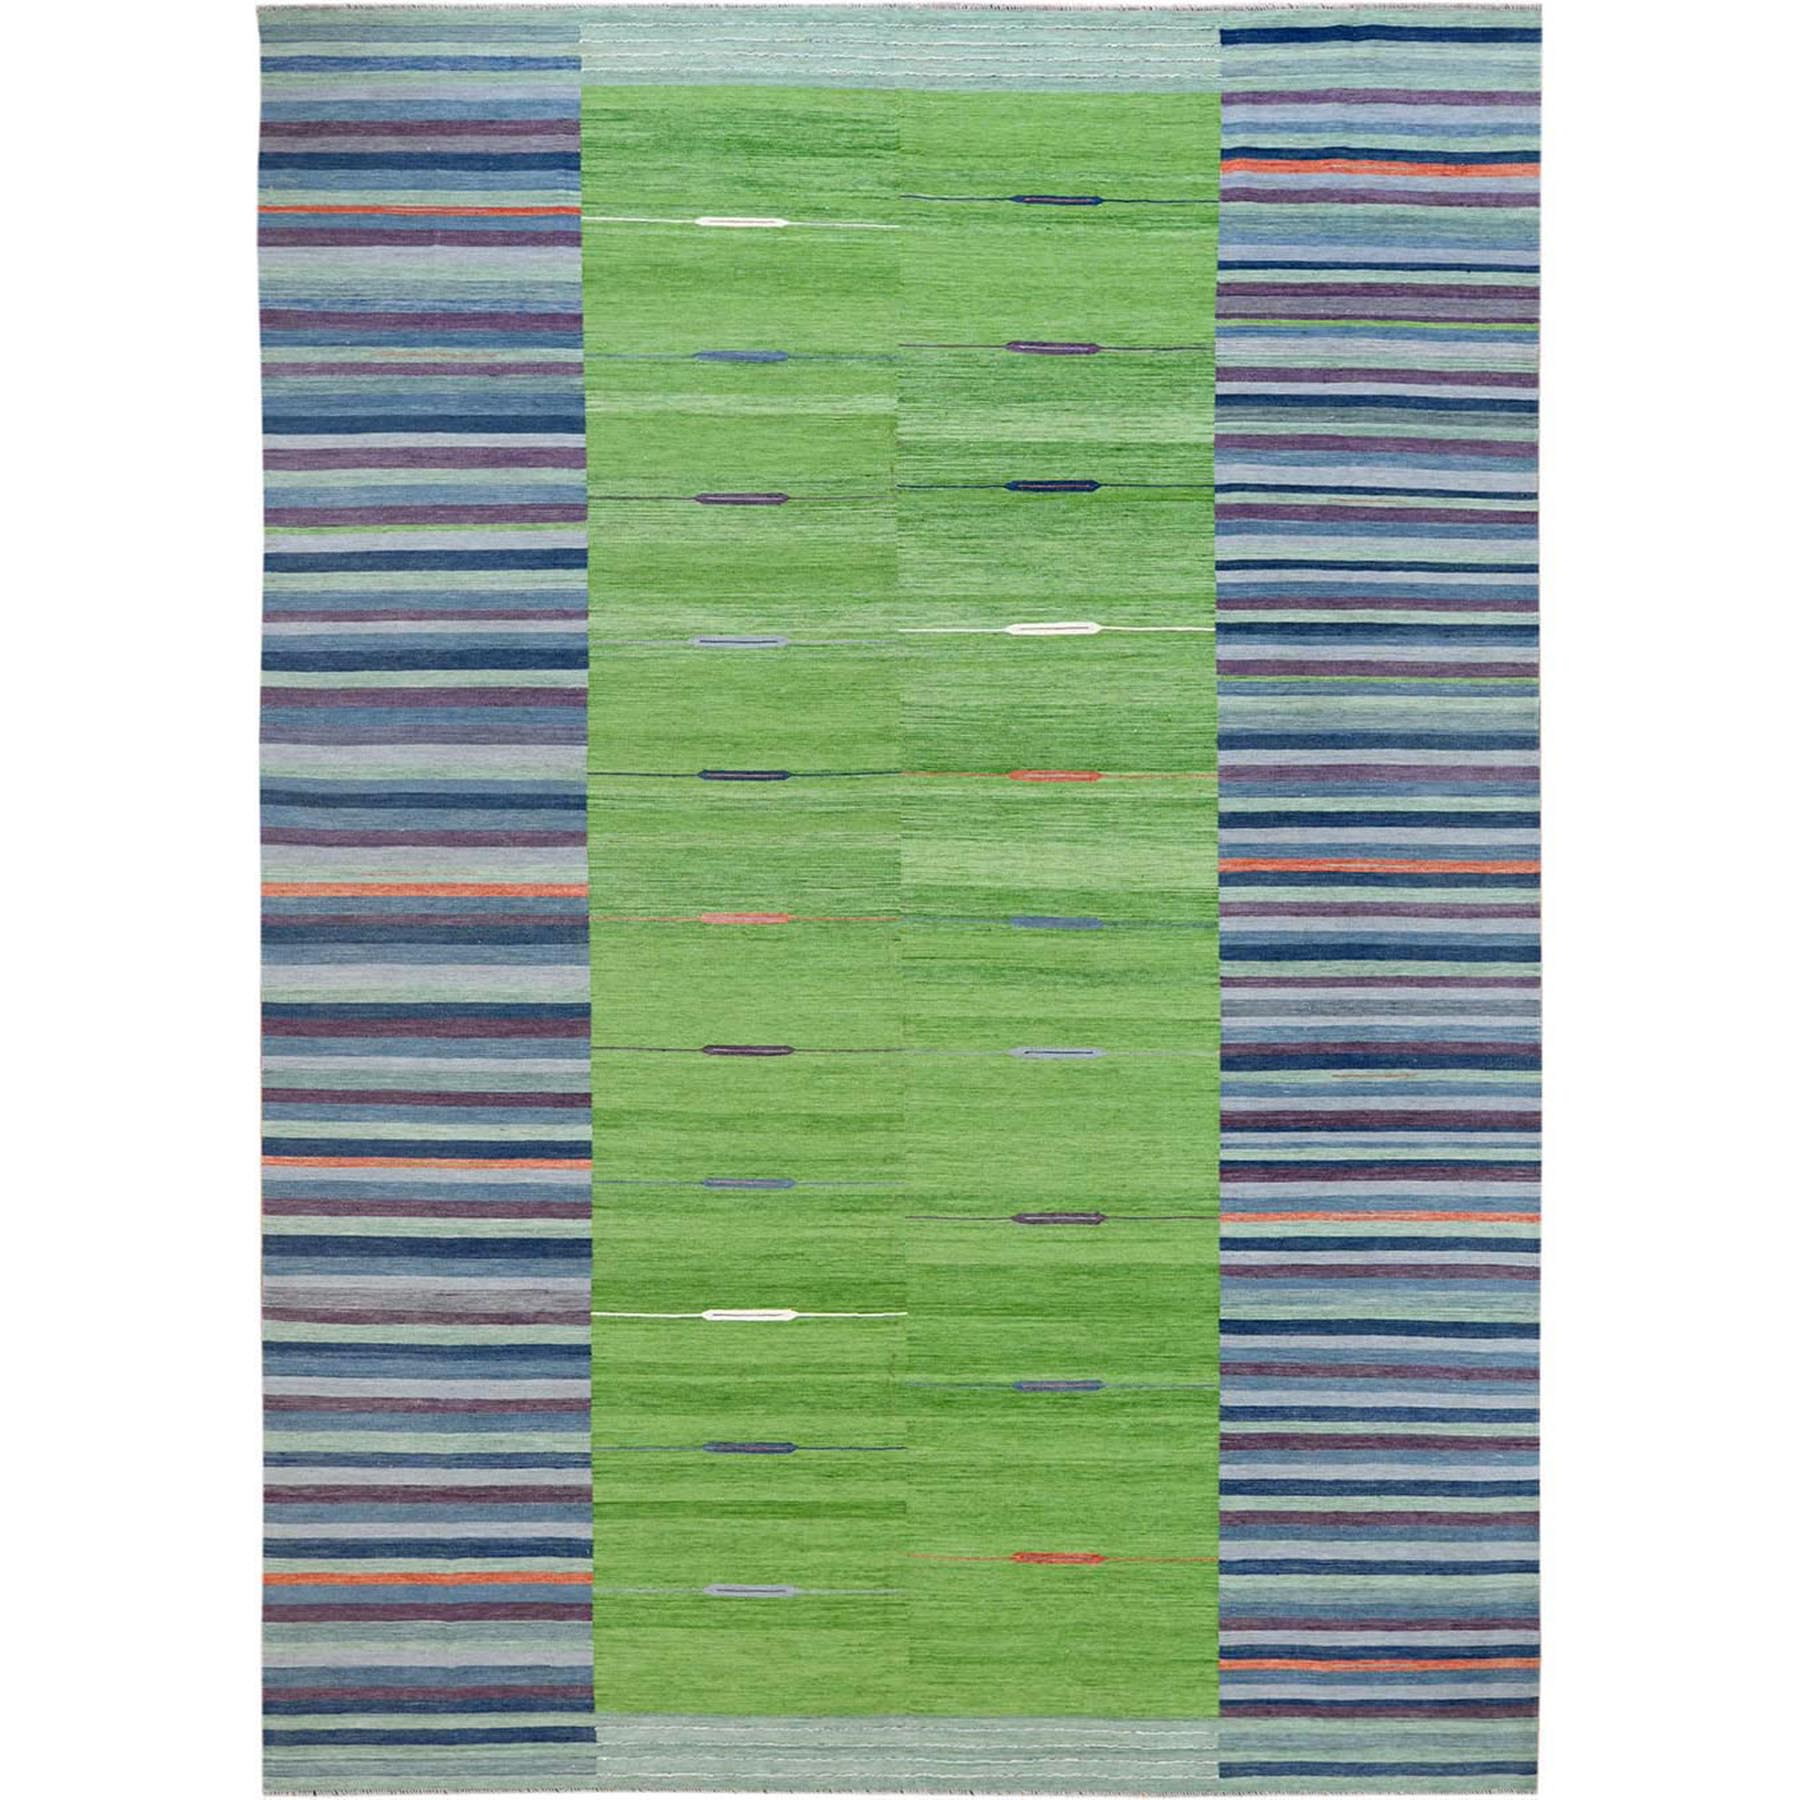 """10'4""""X14'2"""" Flat Weave Kilim Stripe Design Pure Wool Hand Woven Reversible Oriental Over Size Rug moa60097"""